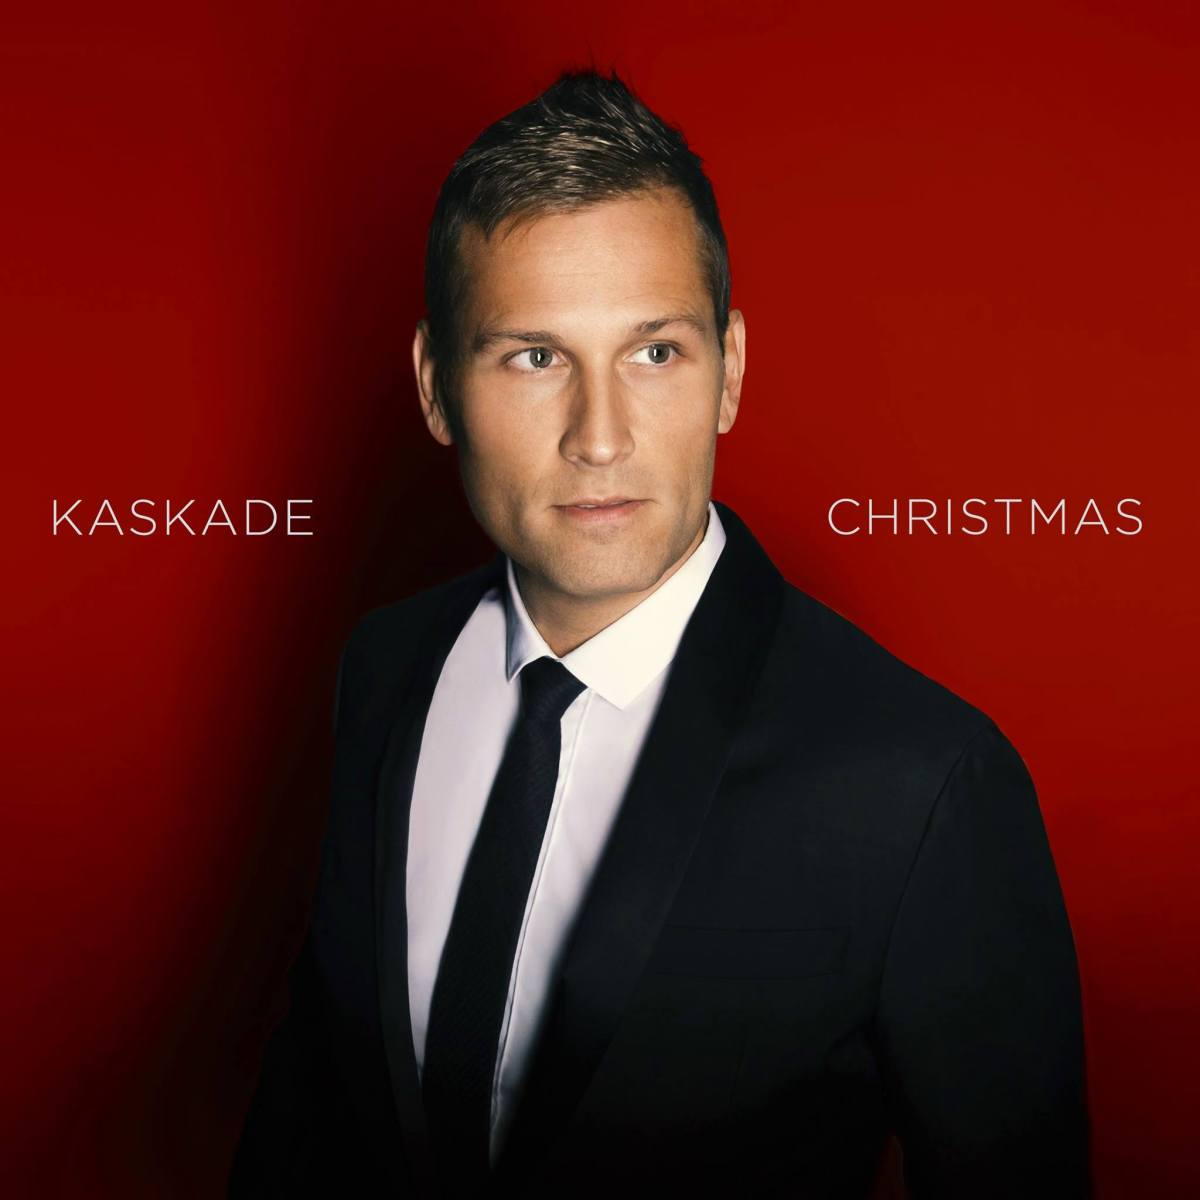 Deck the Halls ft. Erika Kaskade Christmas